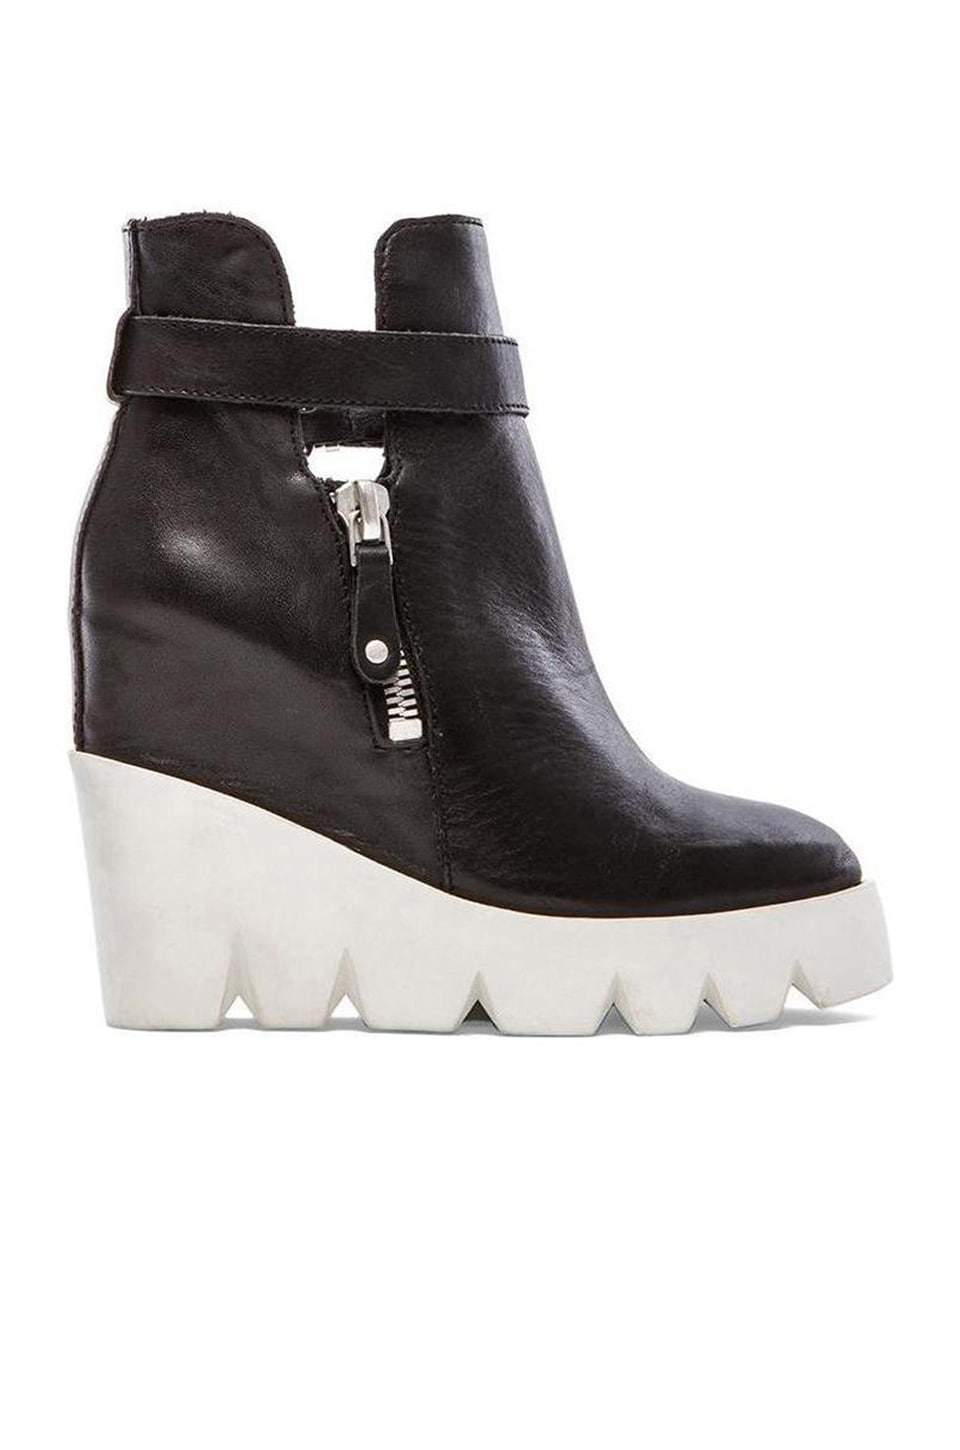 Ash Ricky Bootie in Black & Off White & Silver